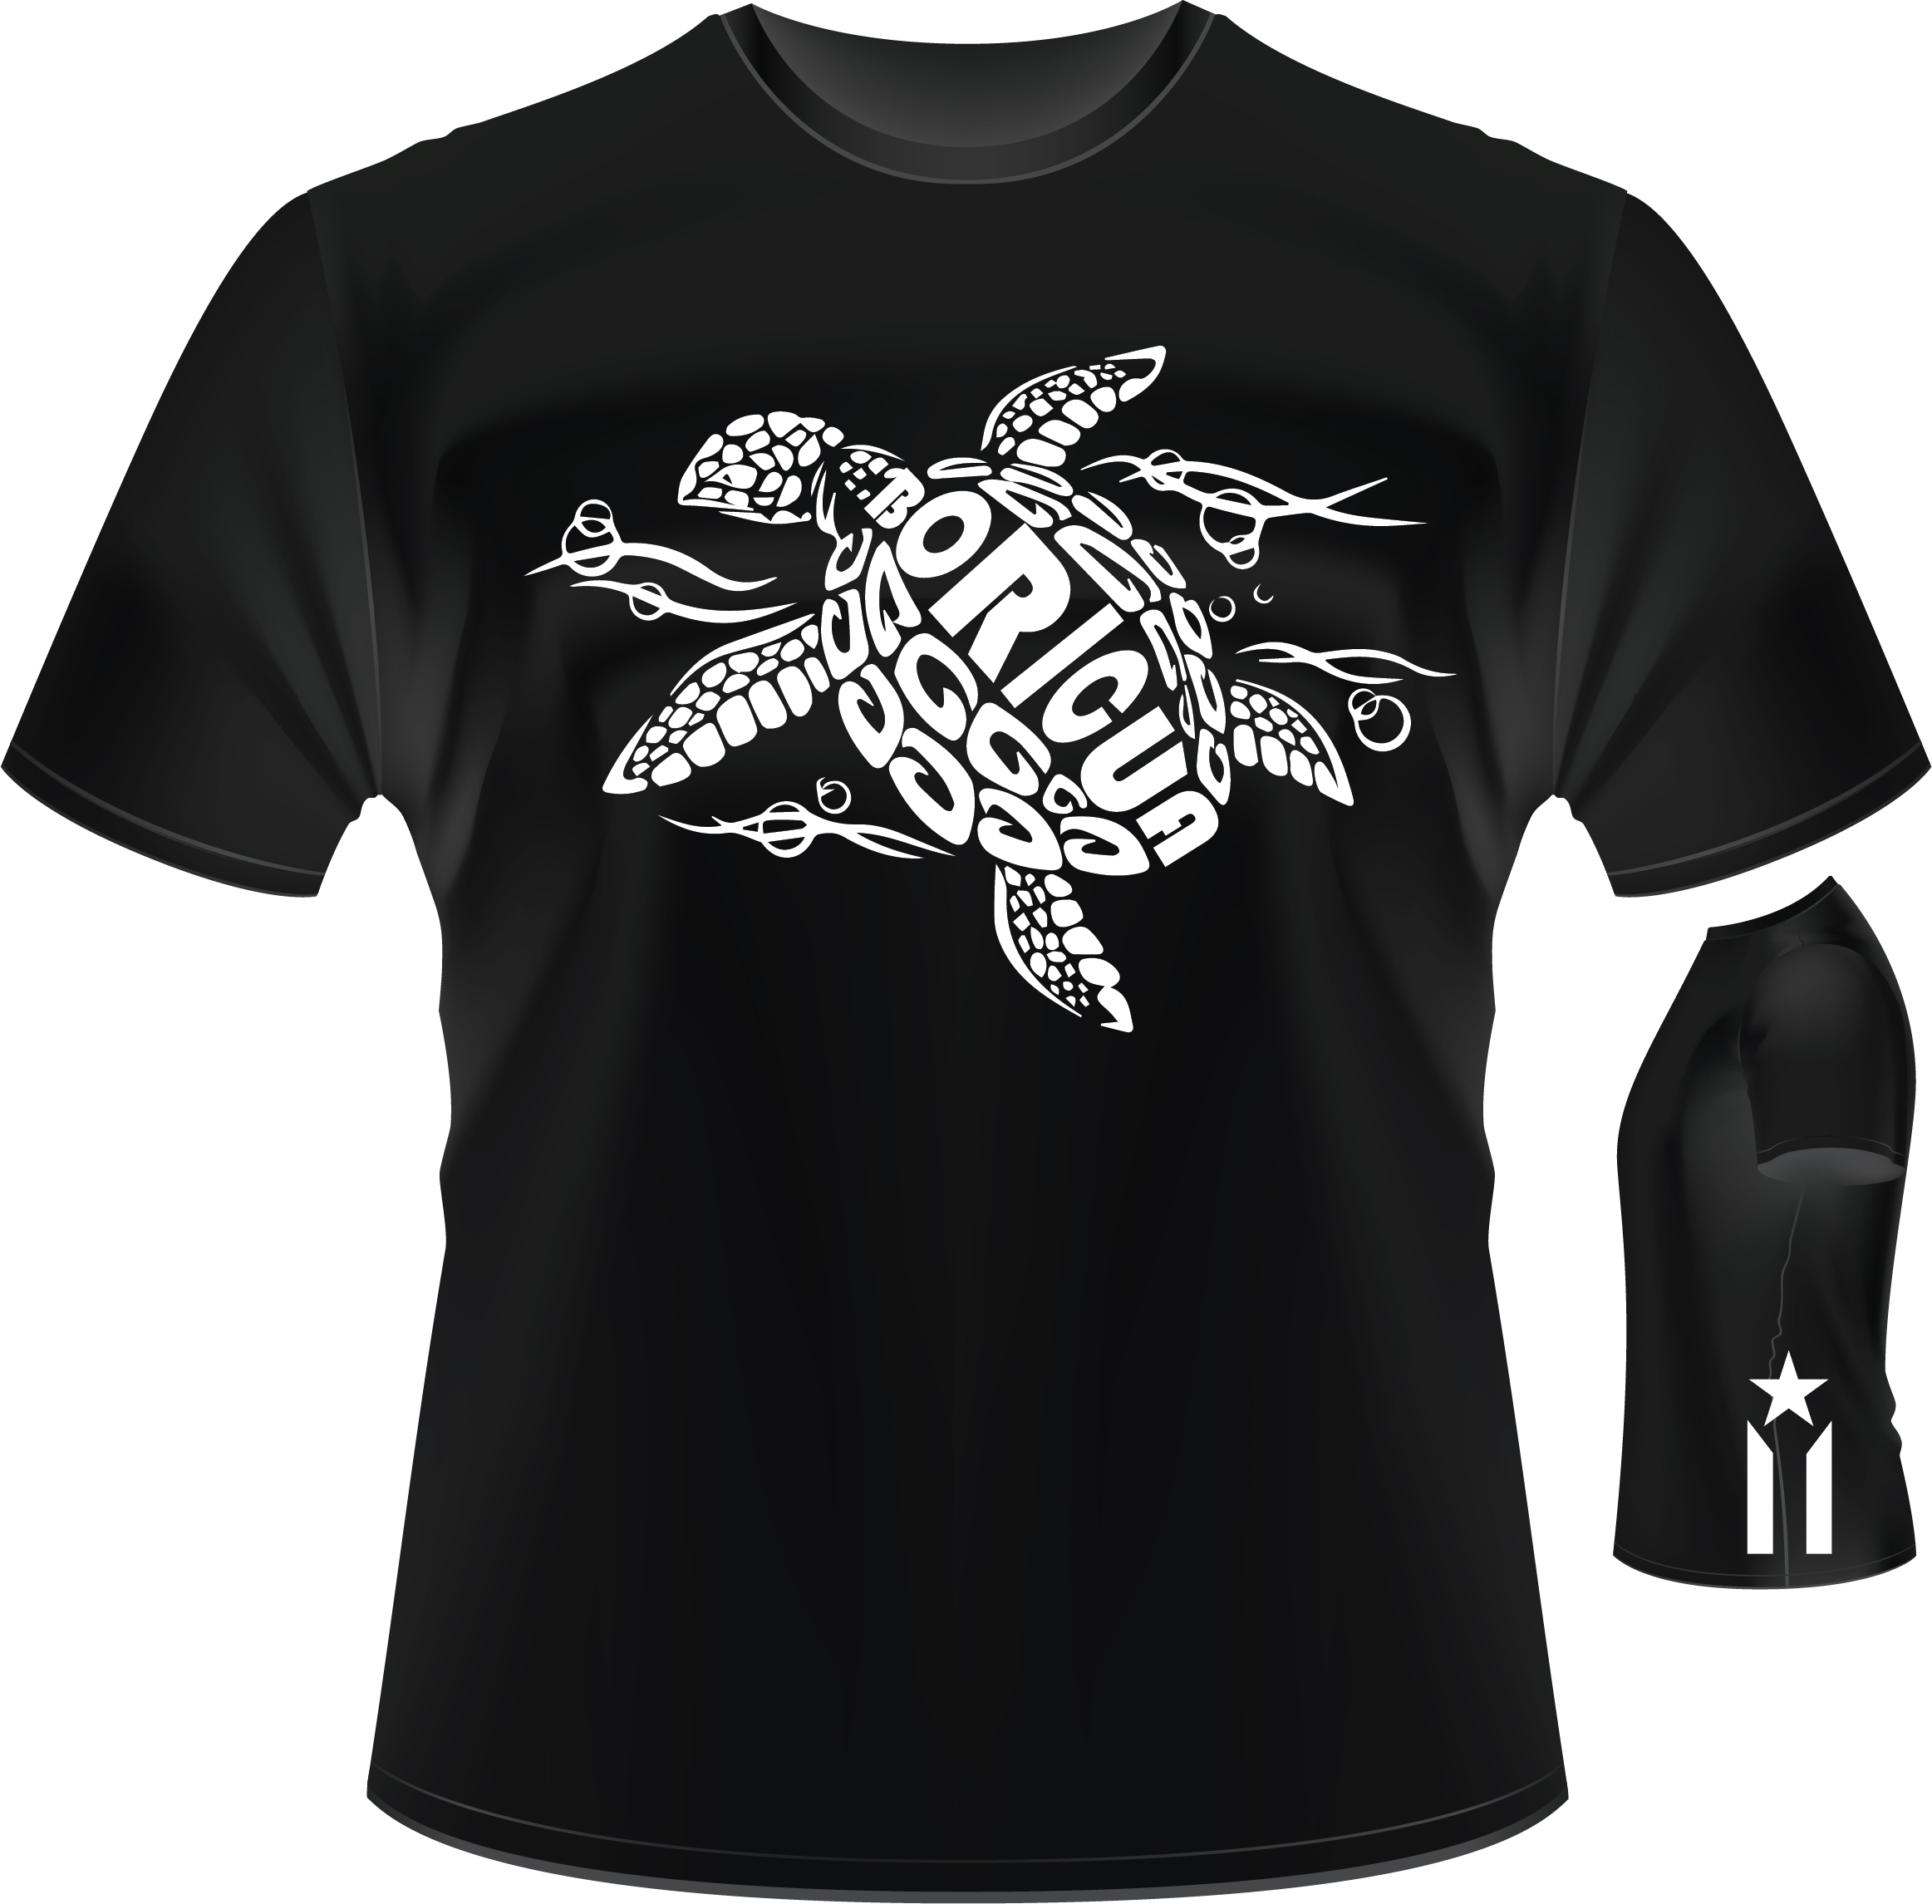 Boricua Turtle And Anarchy Flag t shirt